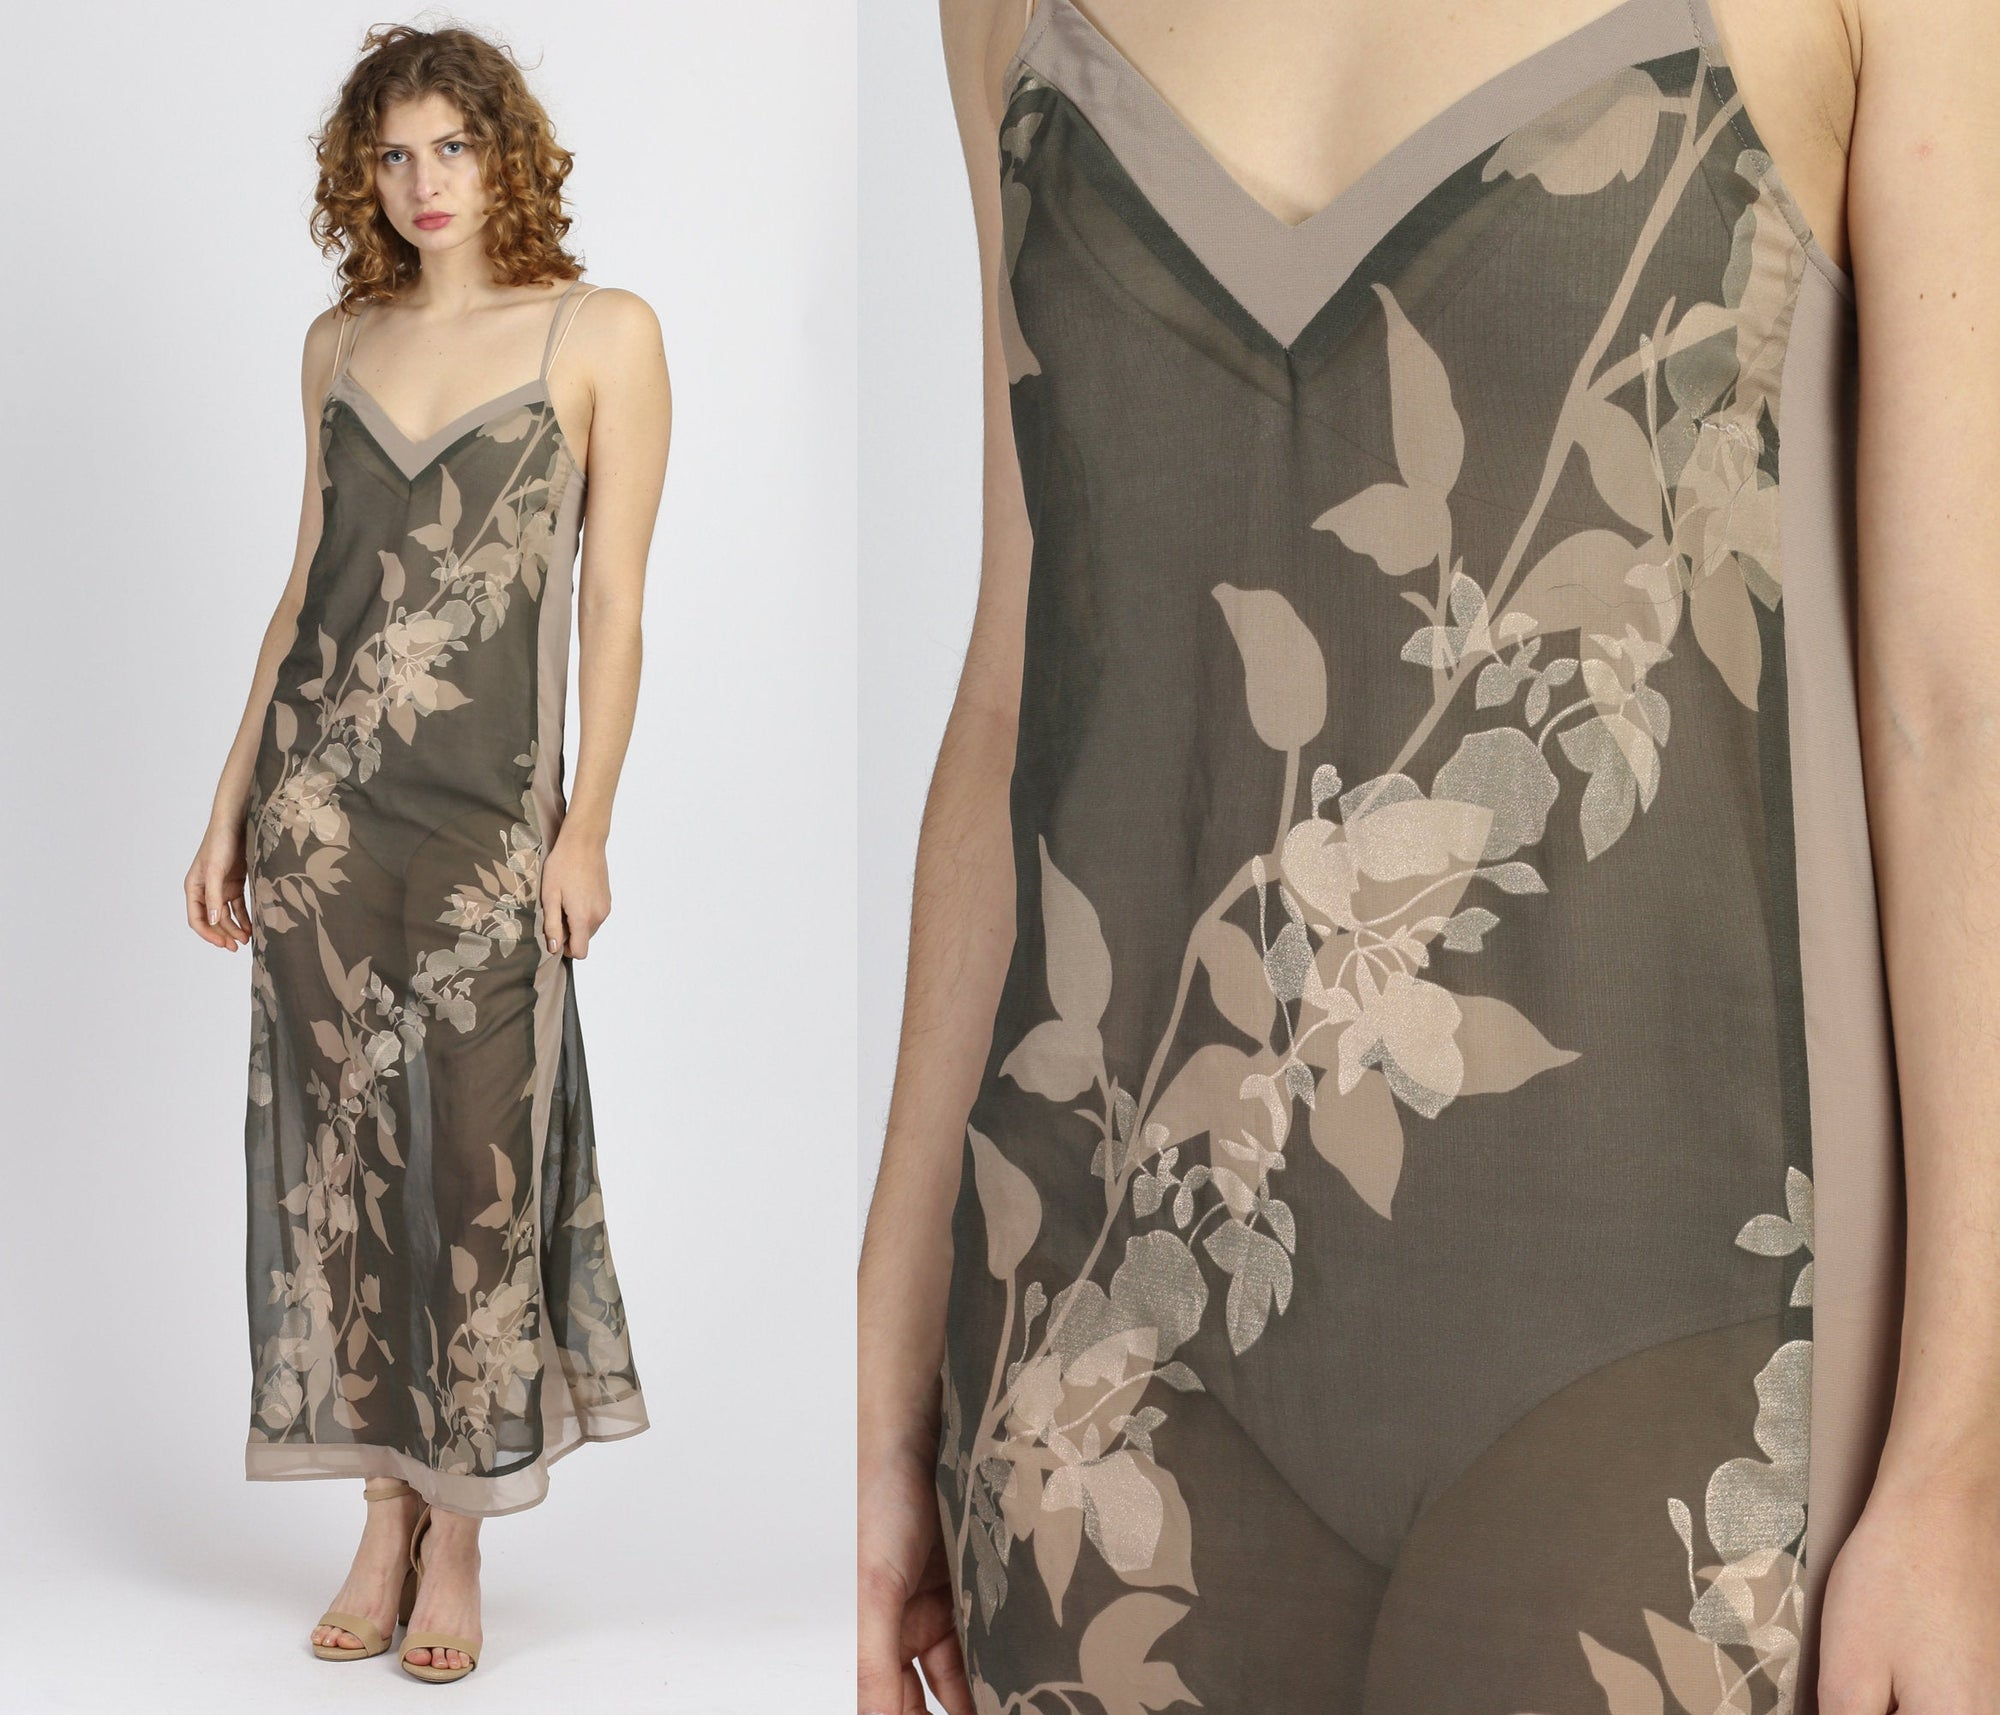 90s Beige Floral Slip Dress - Small